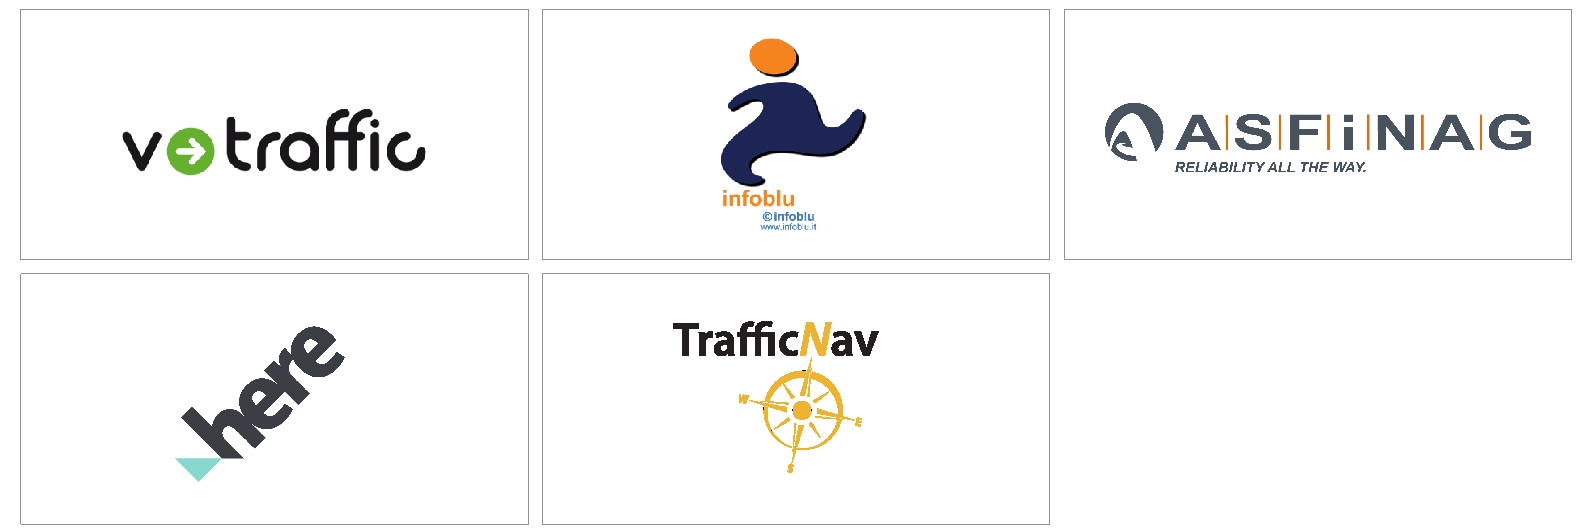 18w10 - Support site - Traffic providers logotypes